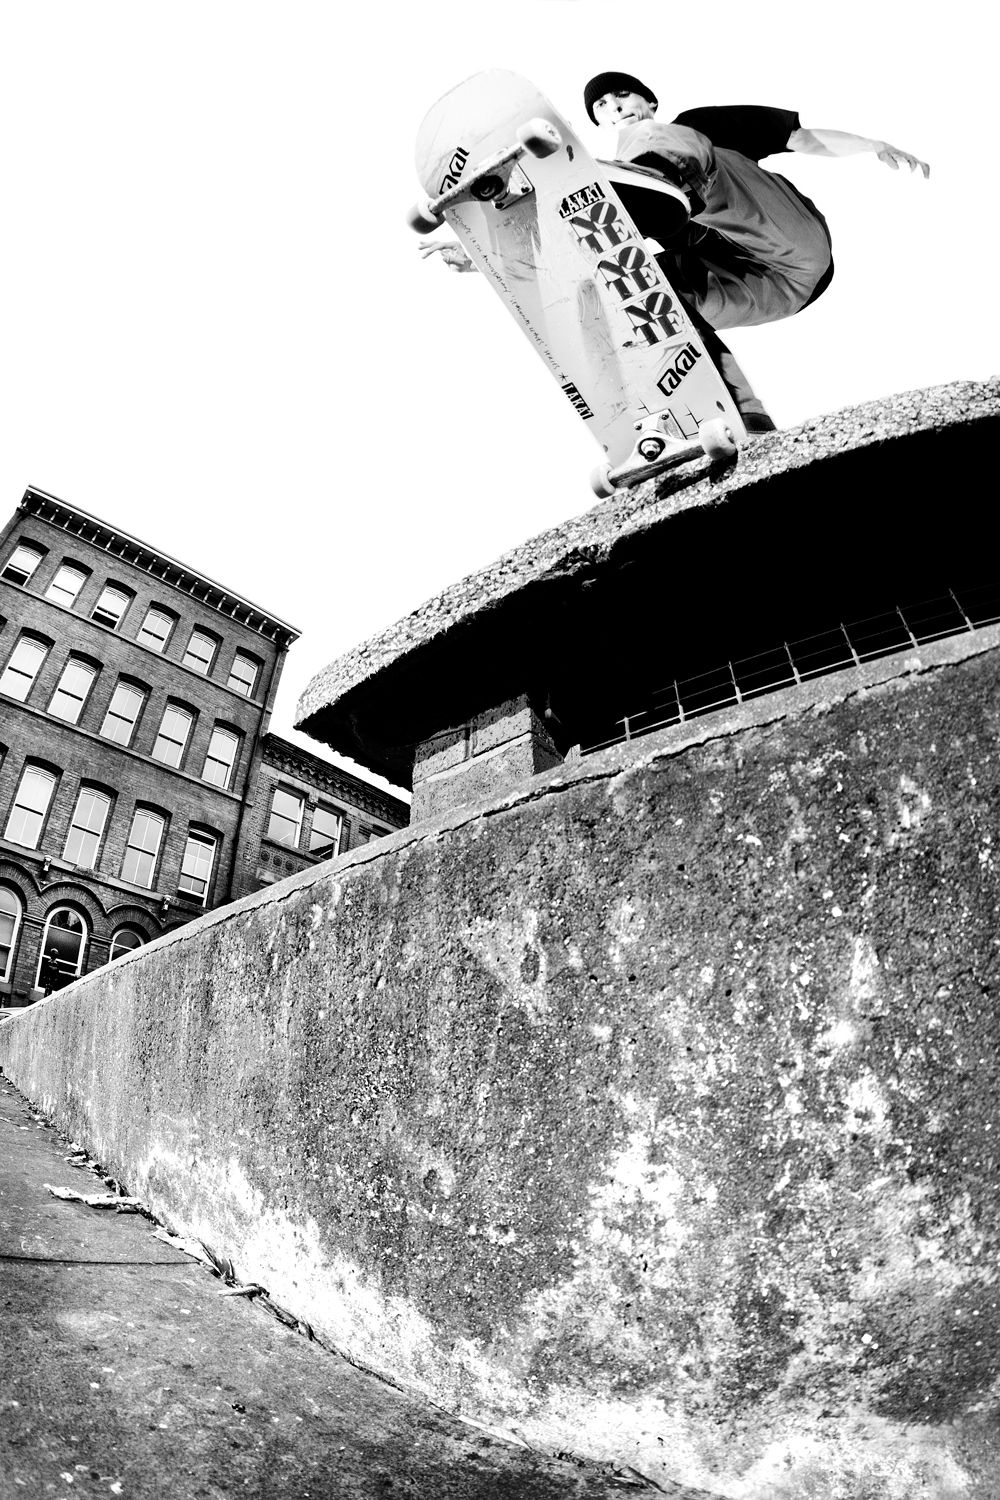 Jed_Coldwell_backside_tailslide_GREY_copyright_Henry_Kingsford